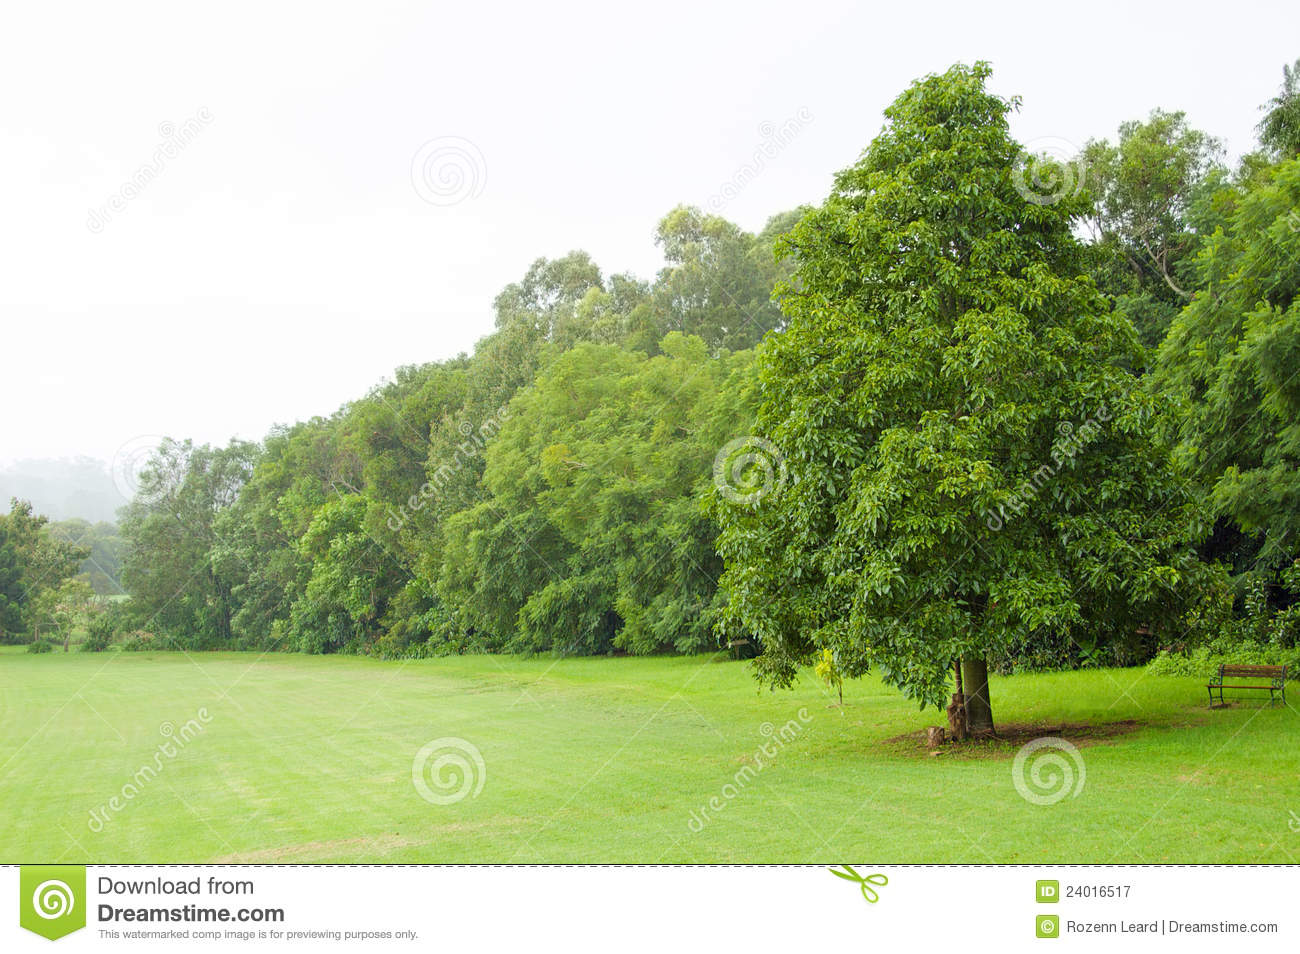 Green lawn and trees